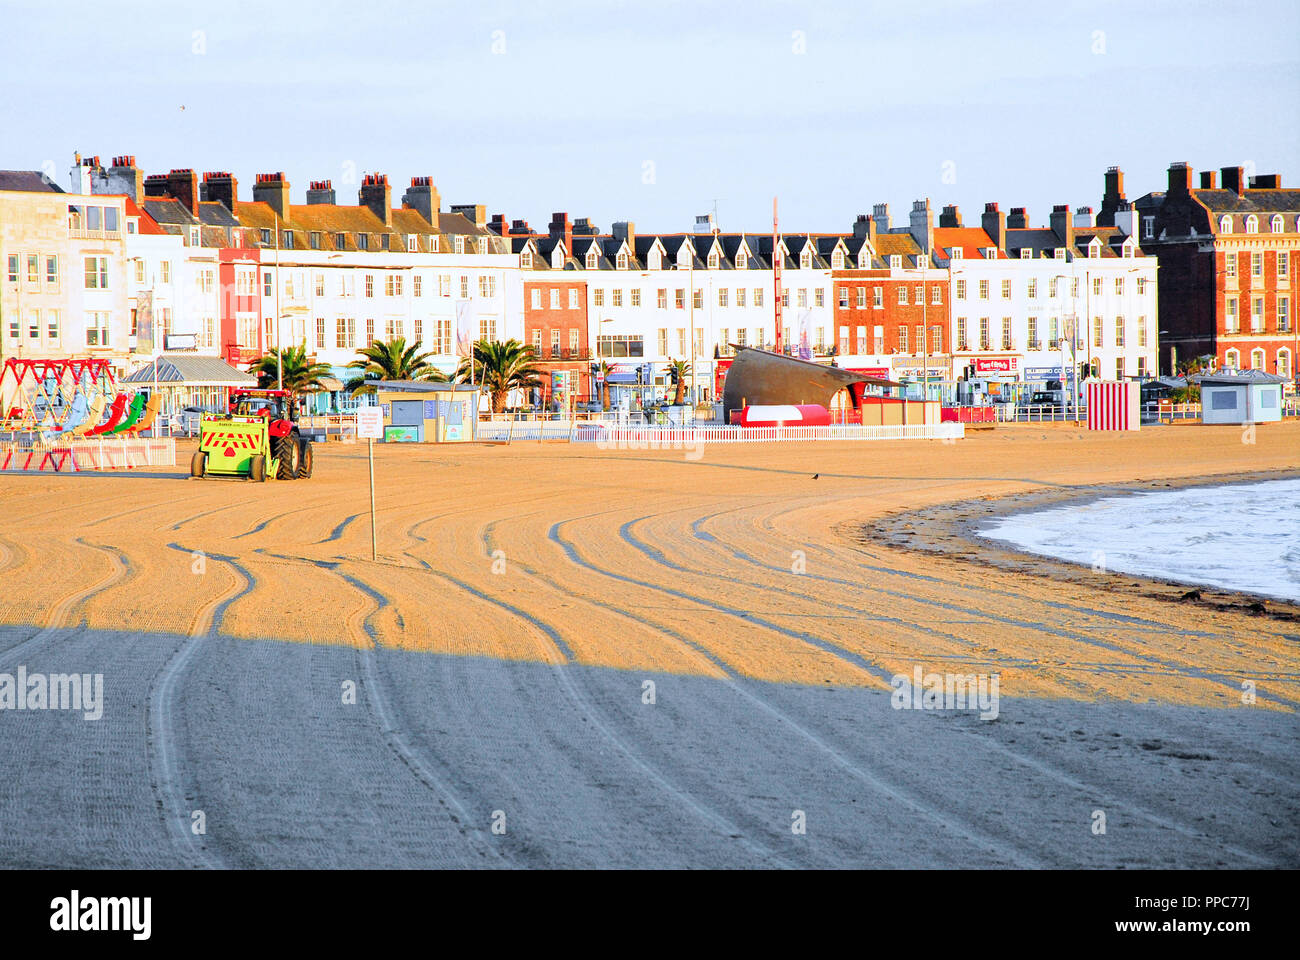 Weymouth 25th September 2018 Weymouth Beach Is Cleaned Ahead Of Forecast Warmer Weather Credit Stuart Fretwell Alamy Live News